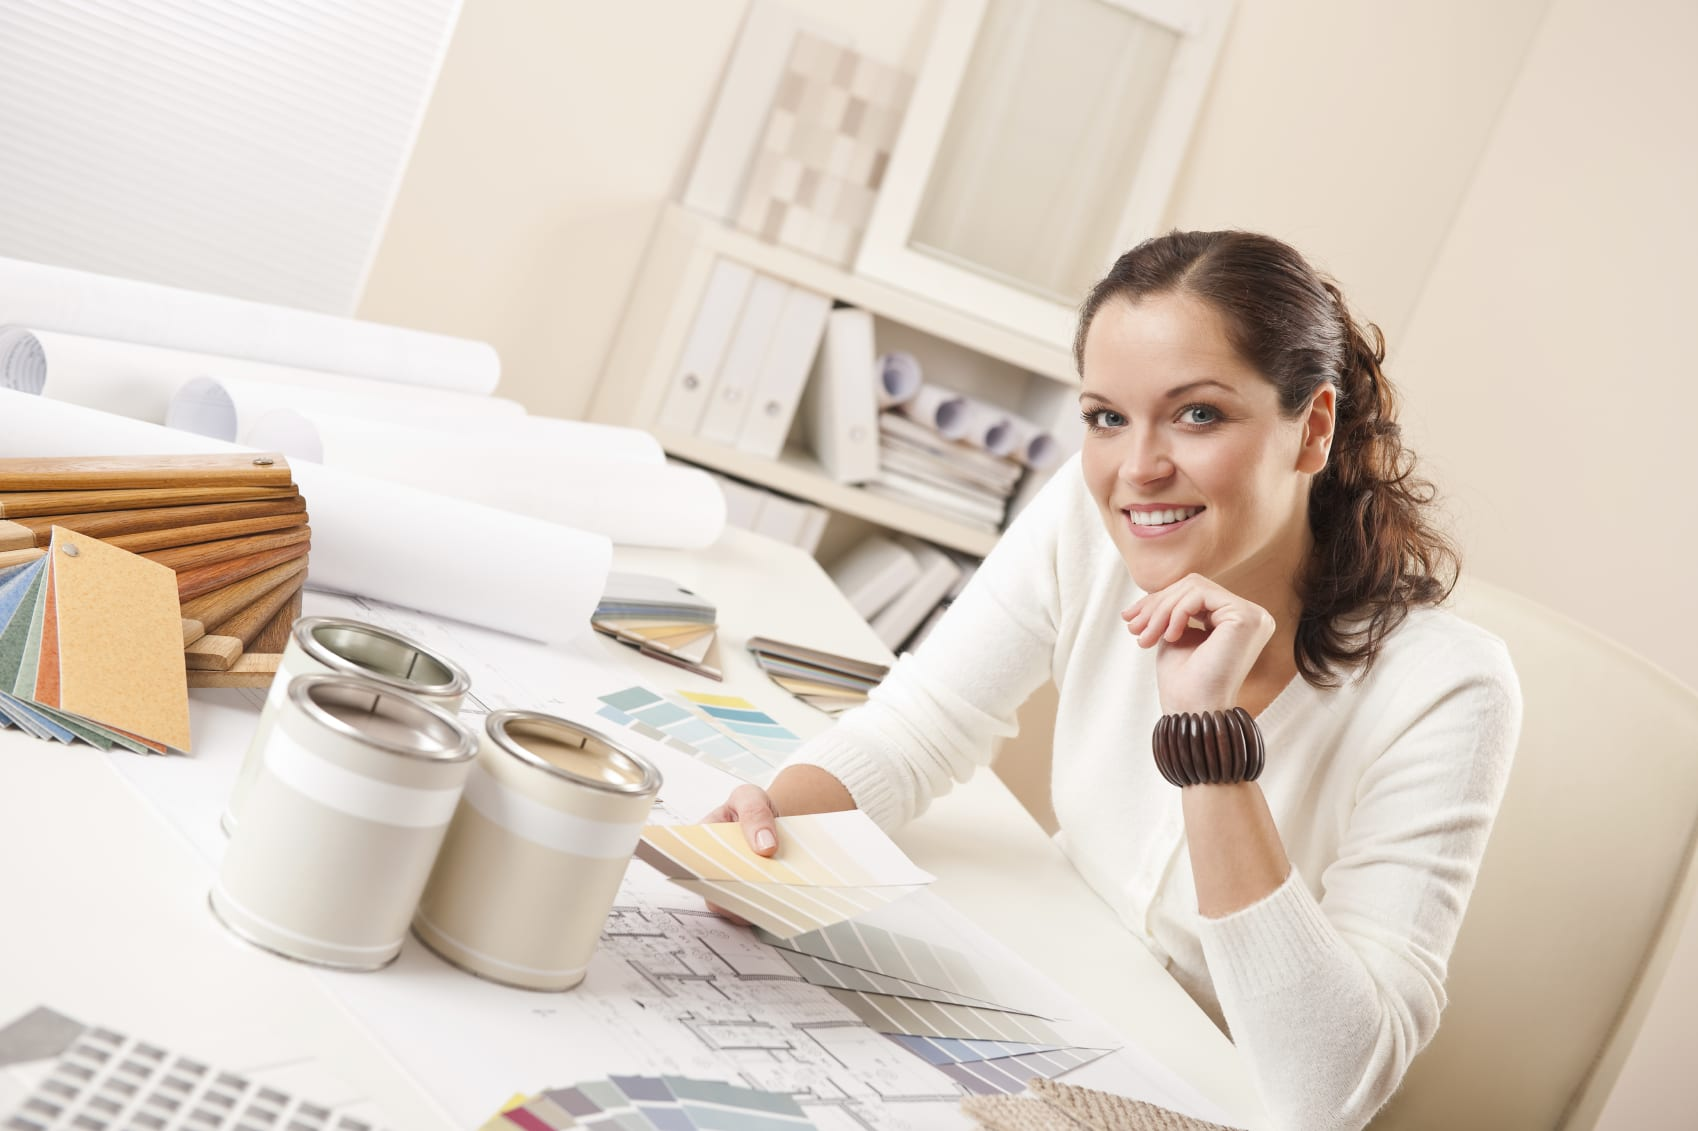 Young Female Interior Designer At Office The First Rule For A Part Time Job